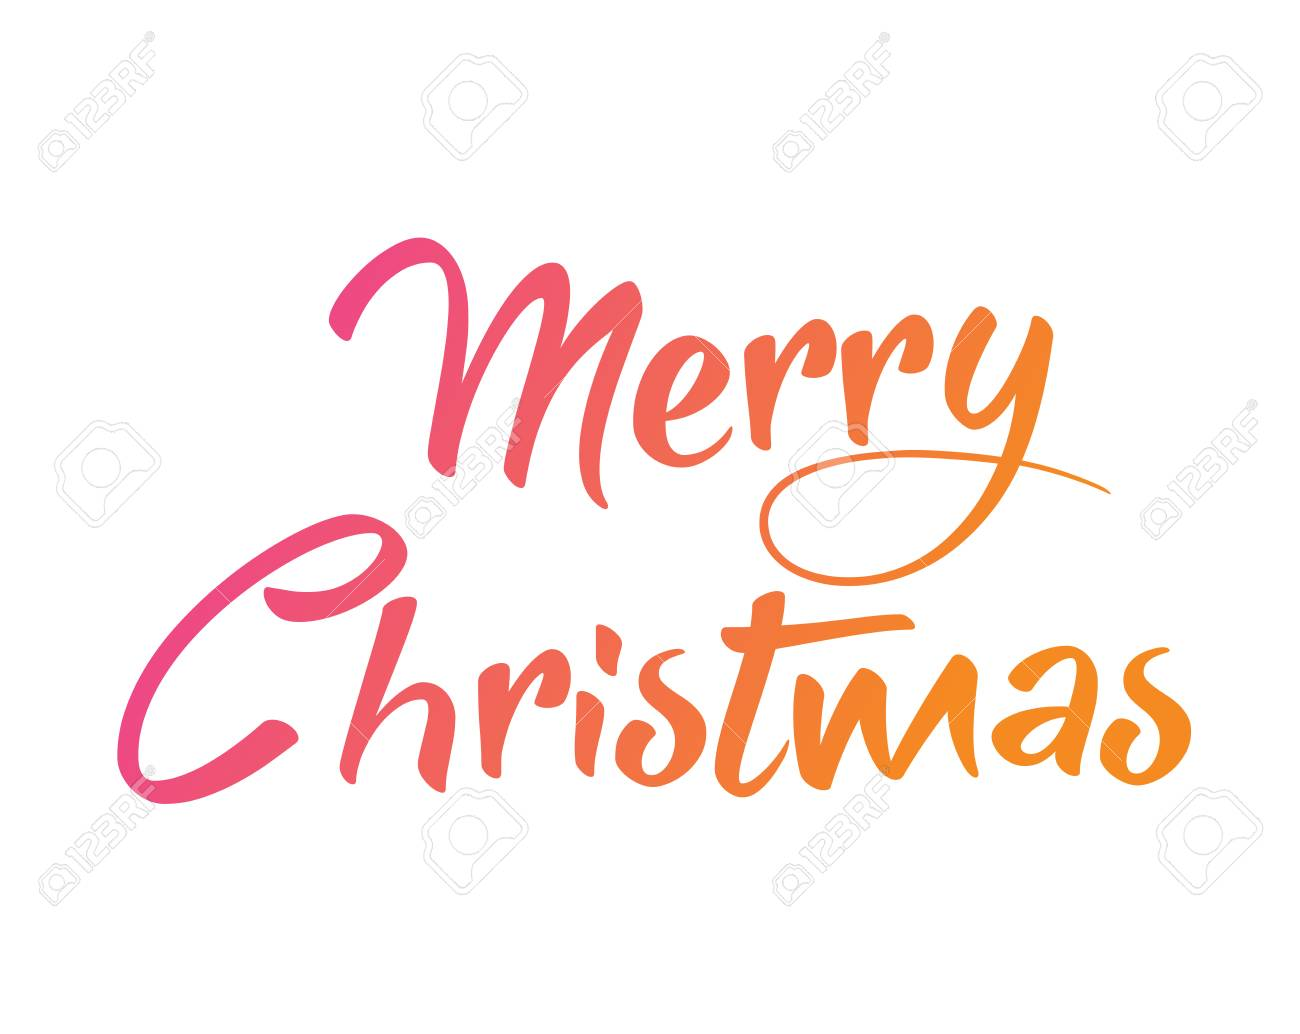 Merry Christmas Writing Clipart.The Gradient Isolated Hand Writing Word Merry Christmas On White